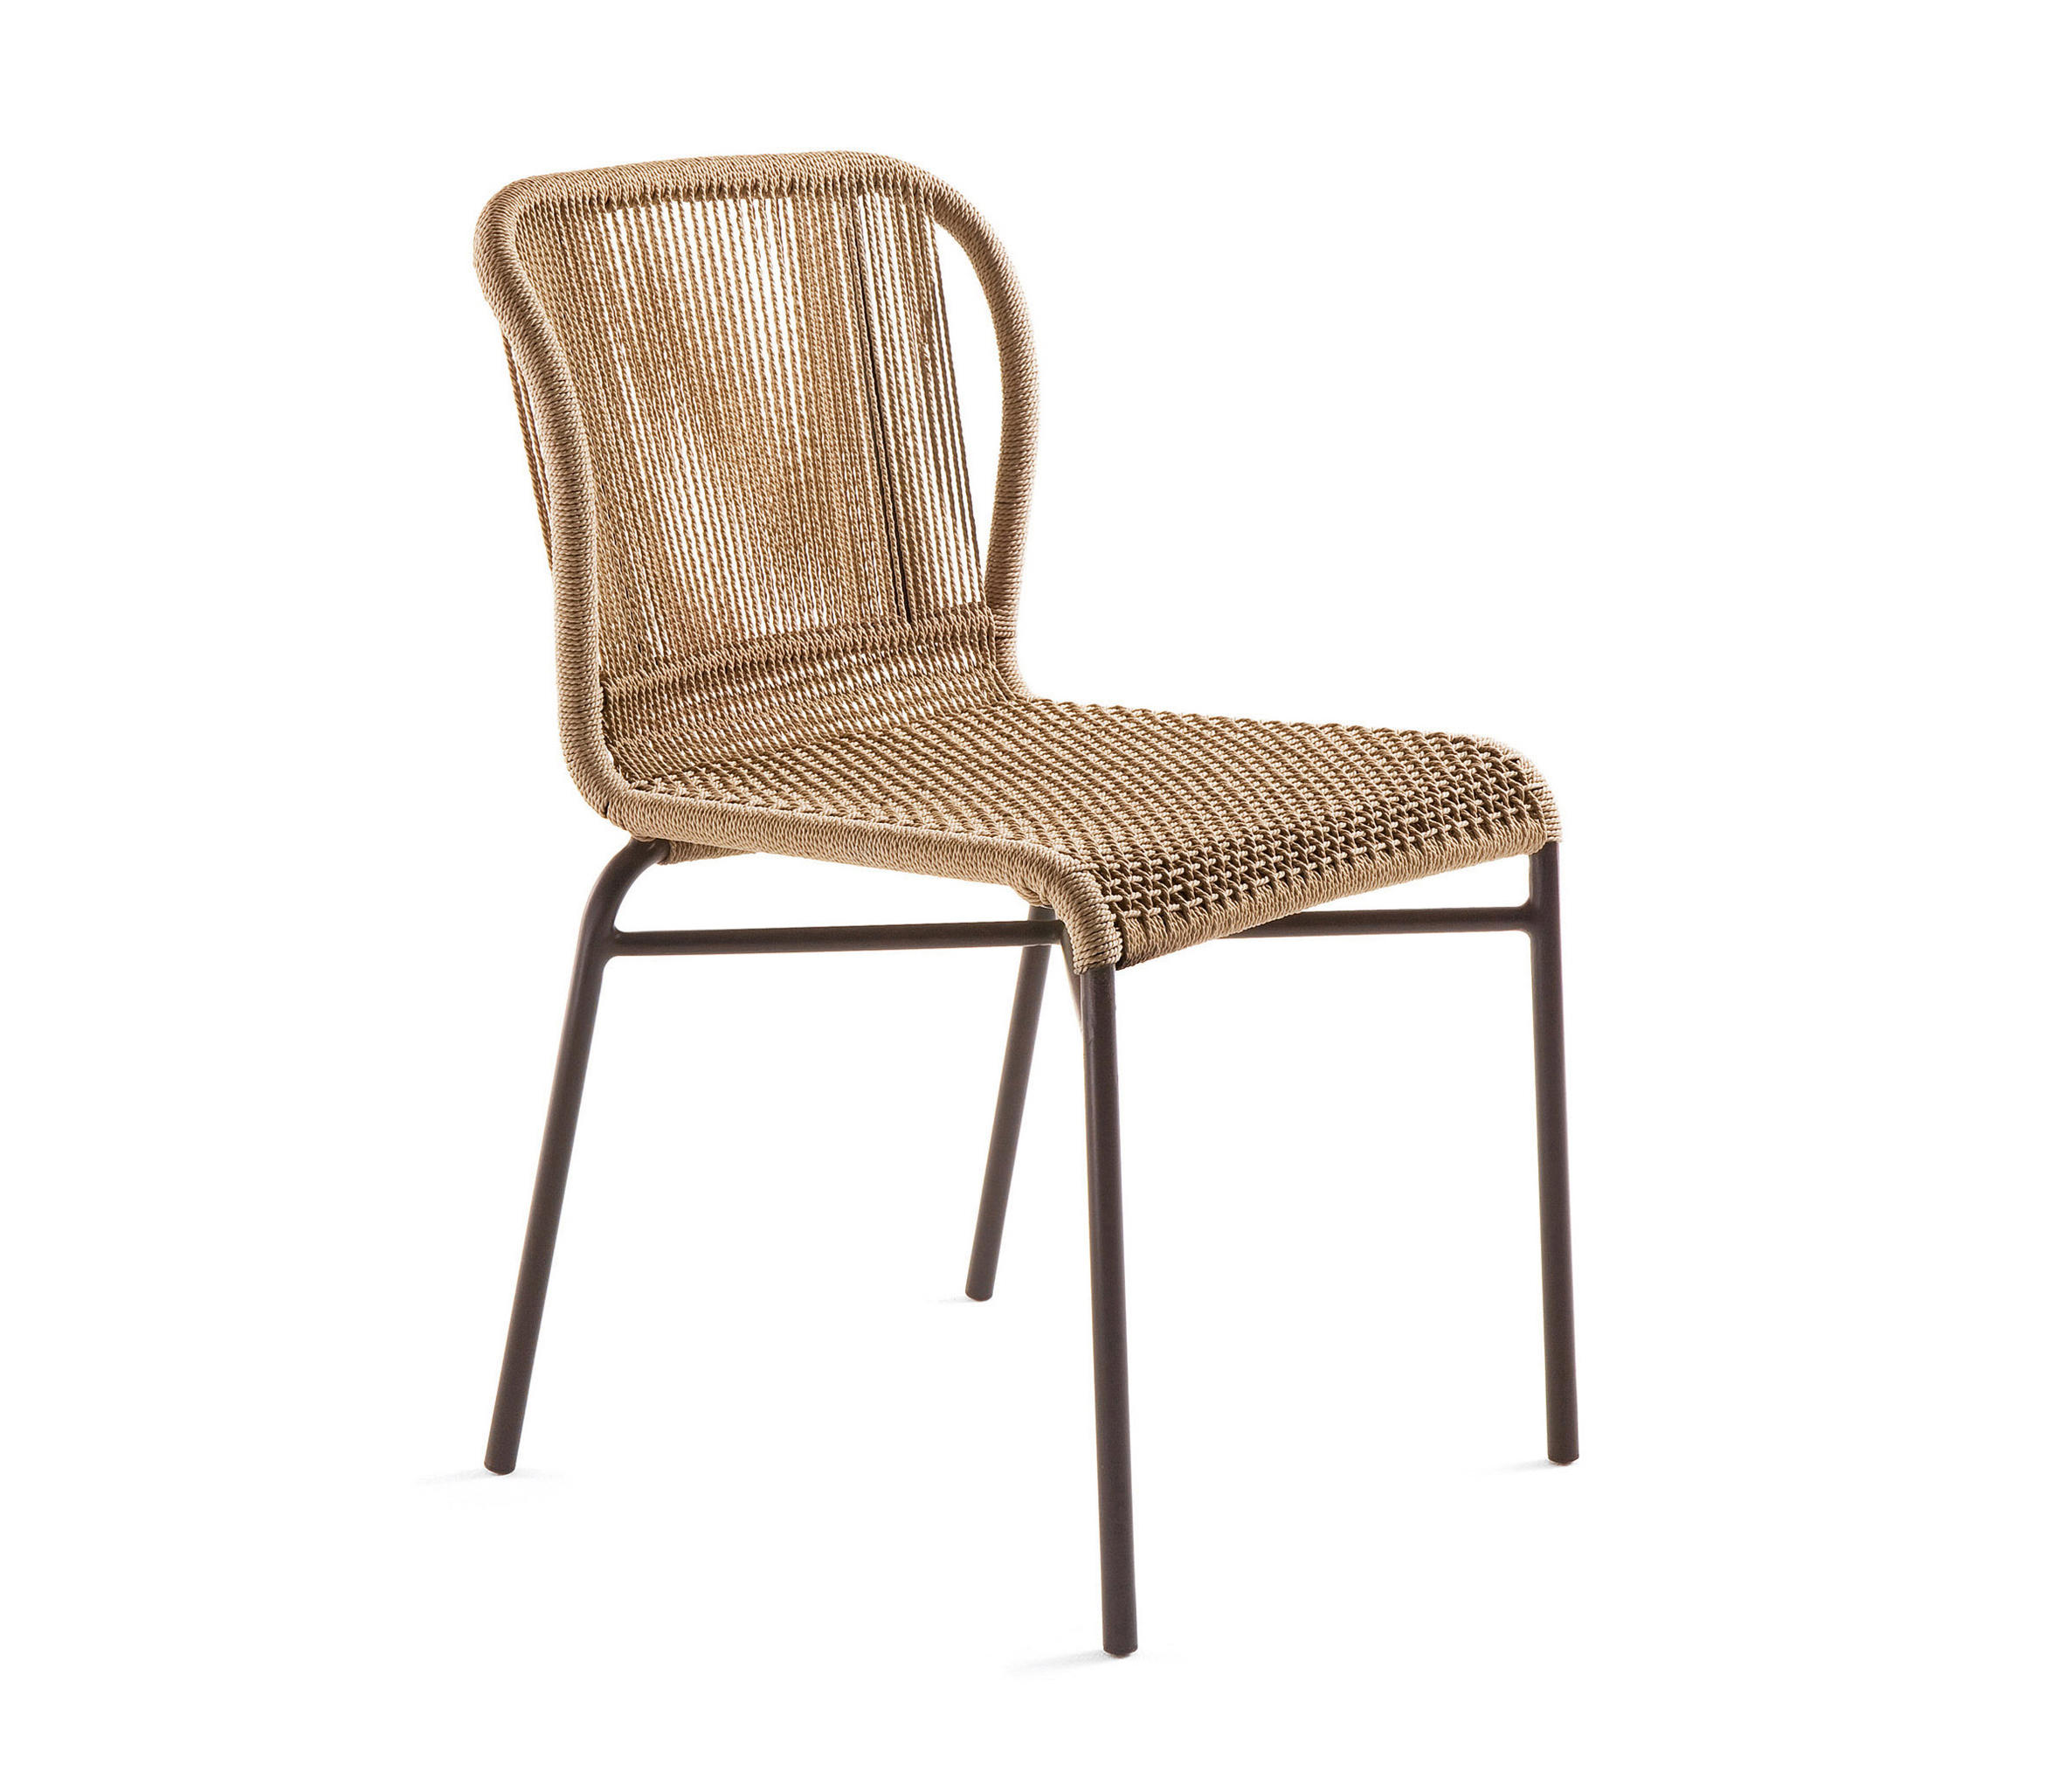 Cricket Chair By Varaschin | Chairs ...